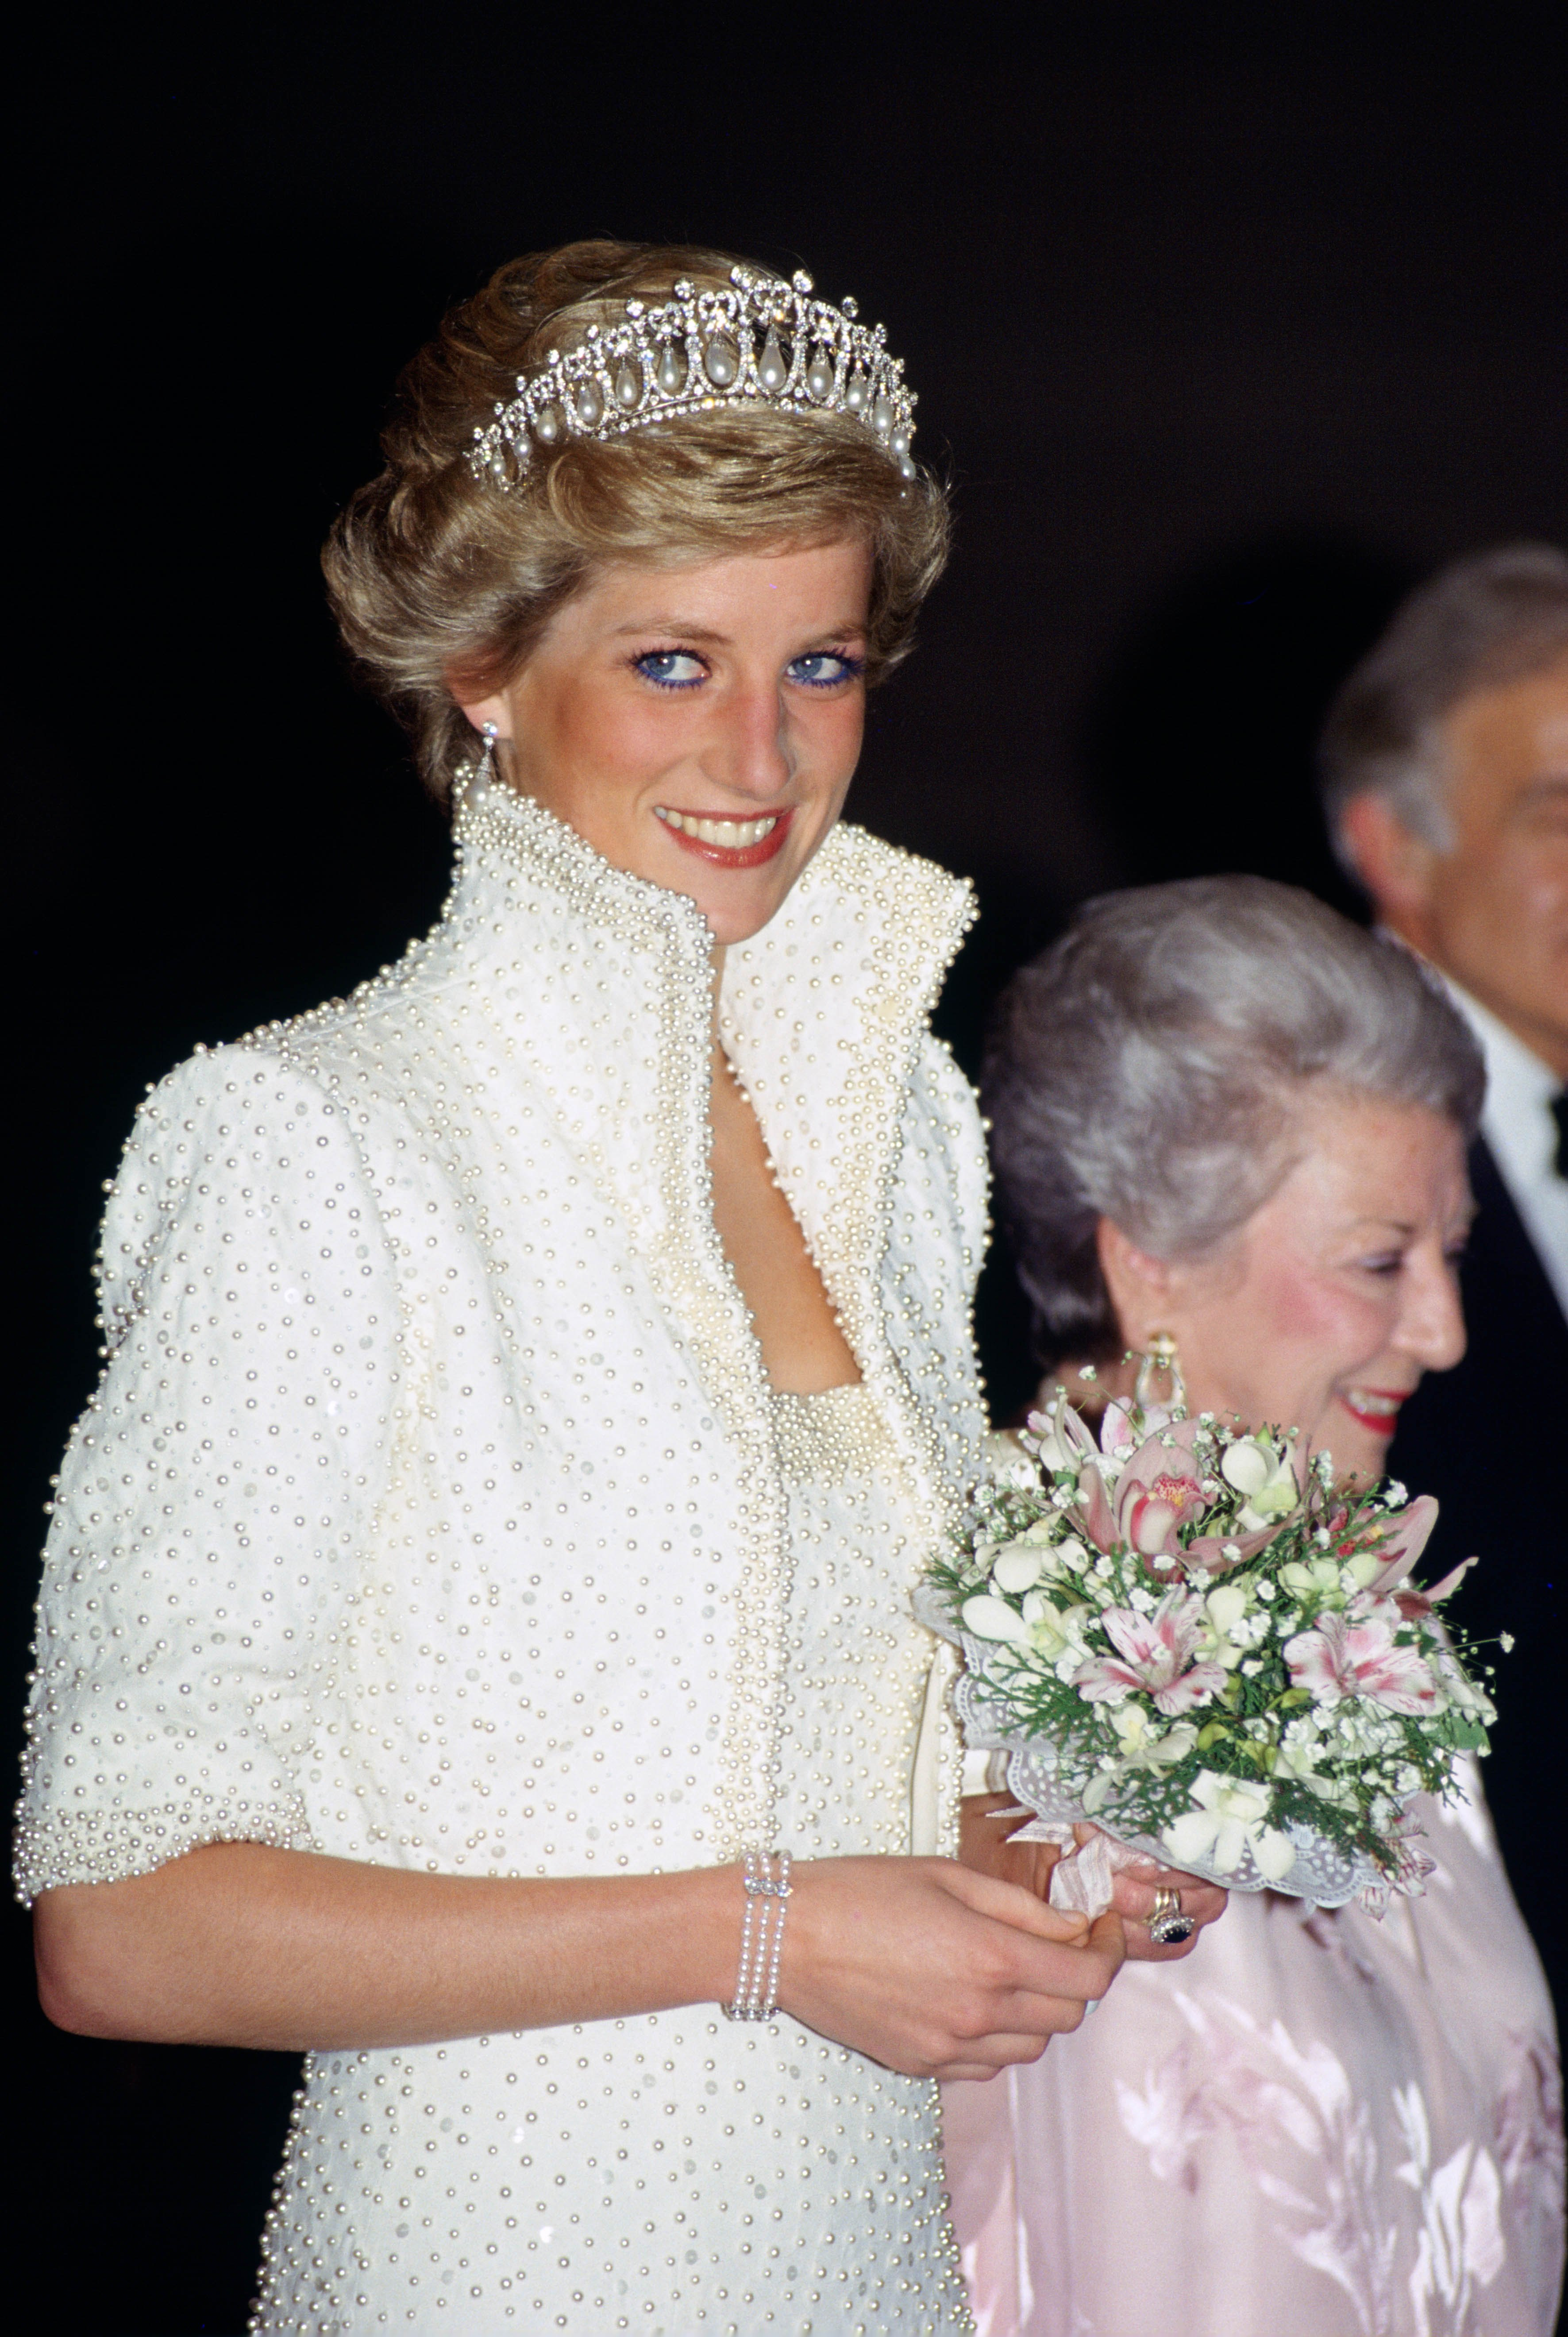 HONG KONG - NOVEMBER 08: Diana, Princess of Wales wears an outfit described as the 'Elvis dress' designed by Catherine Walker to the Culture Centre in Hong Kong (Photo by Tim Graham/Getty Images)